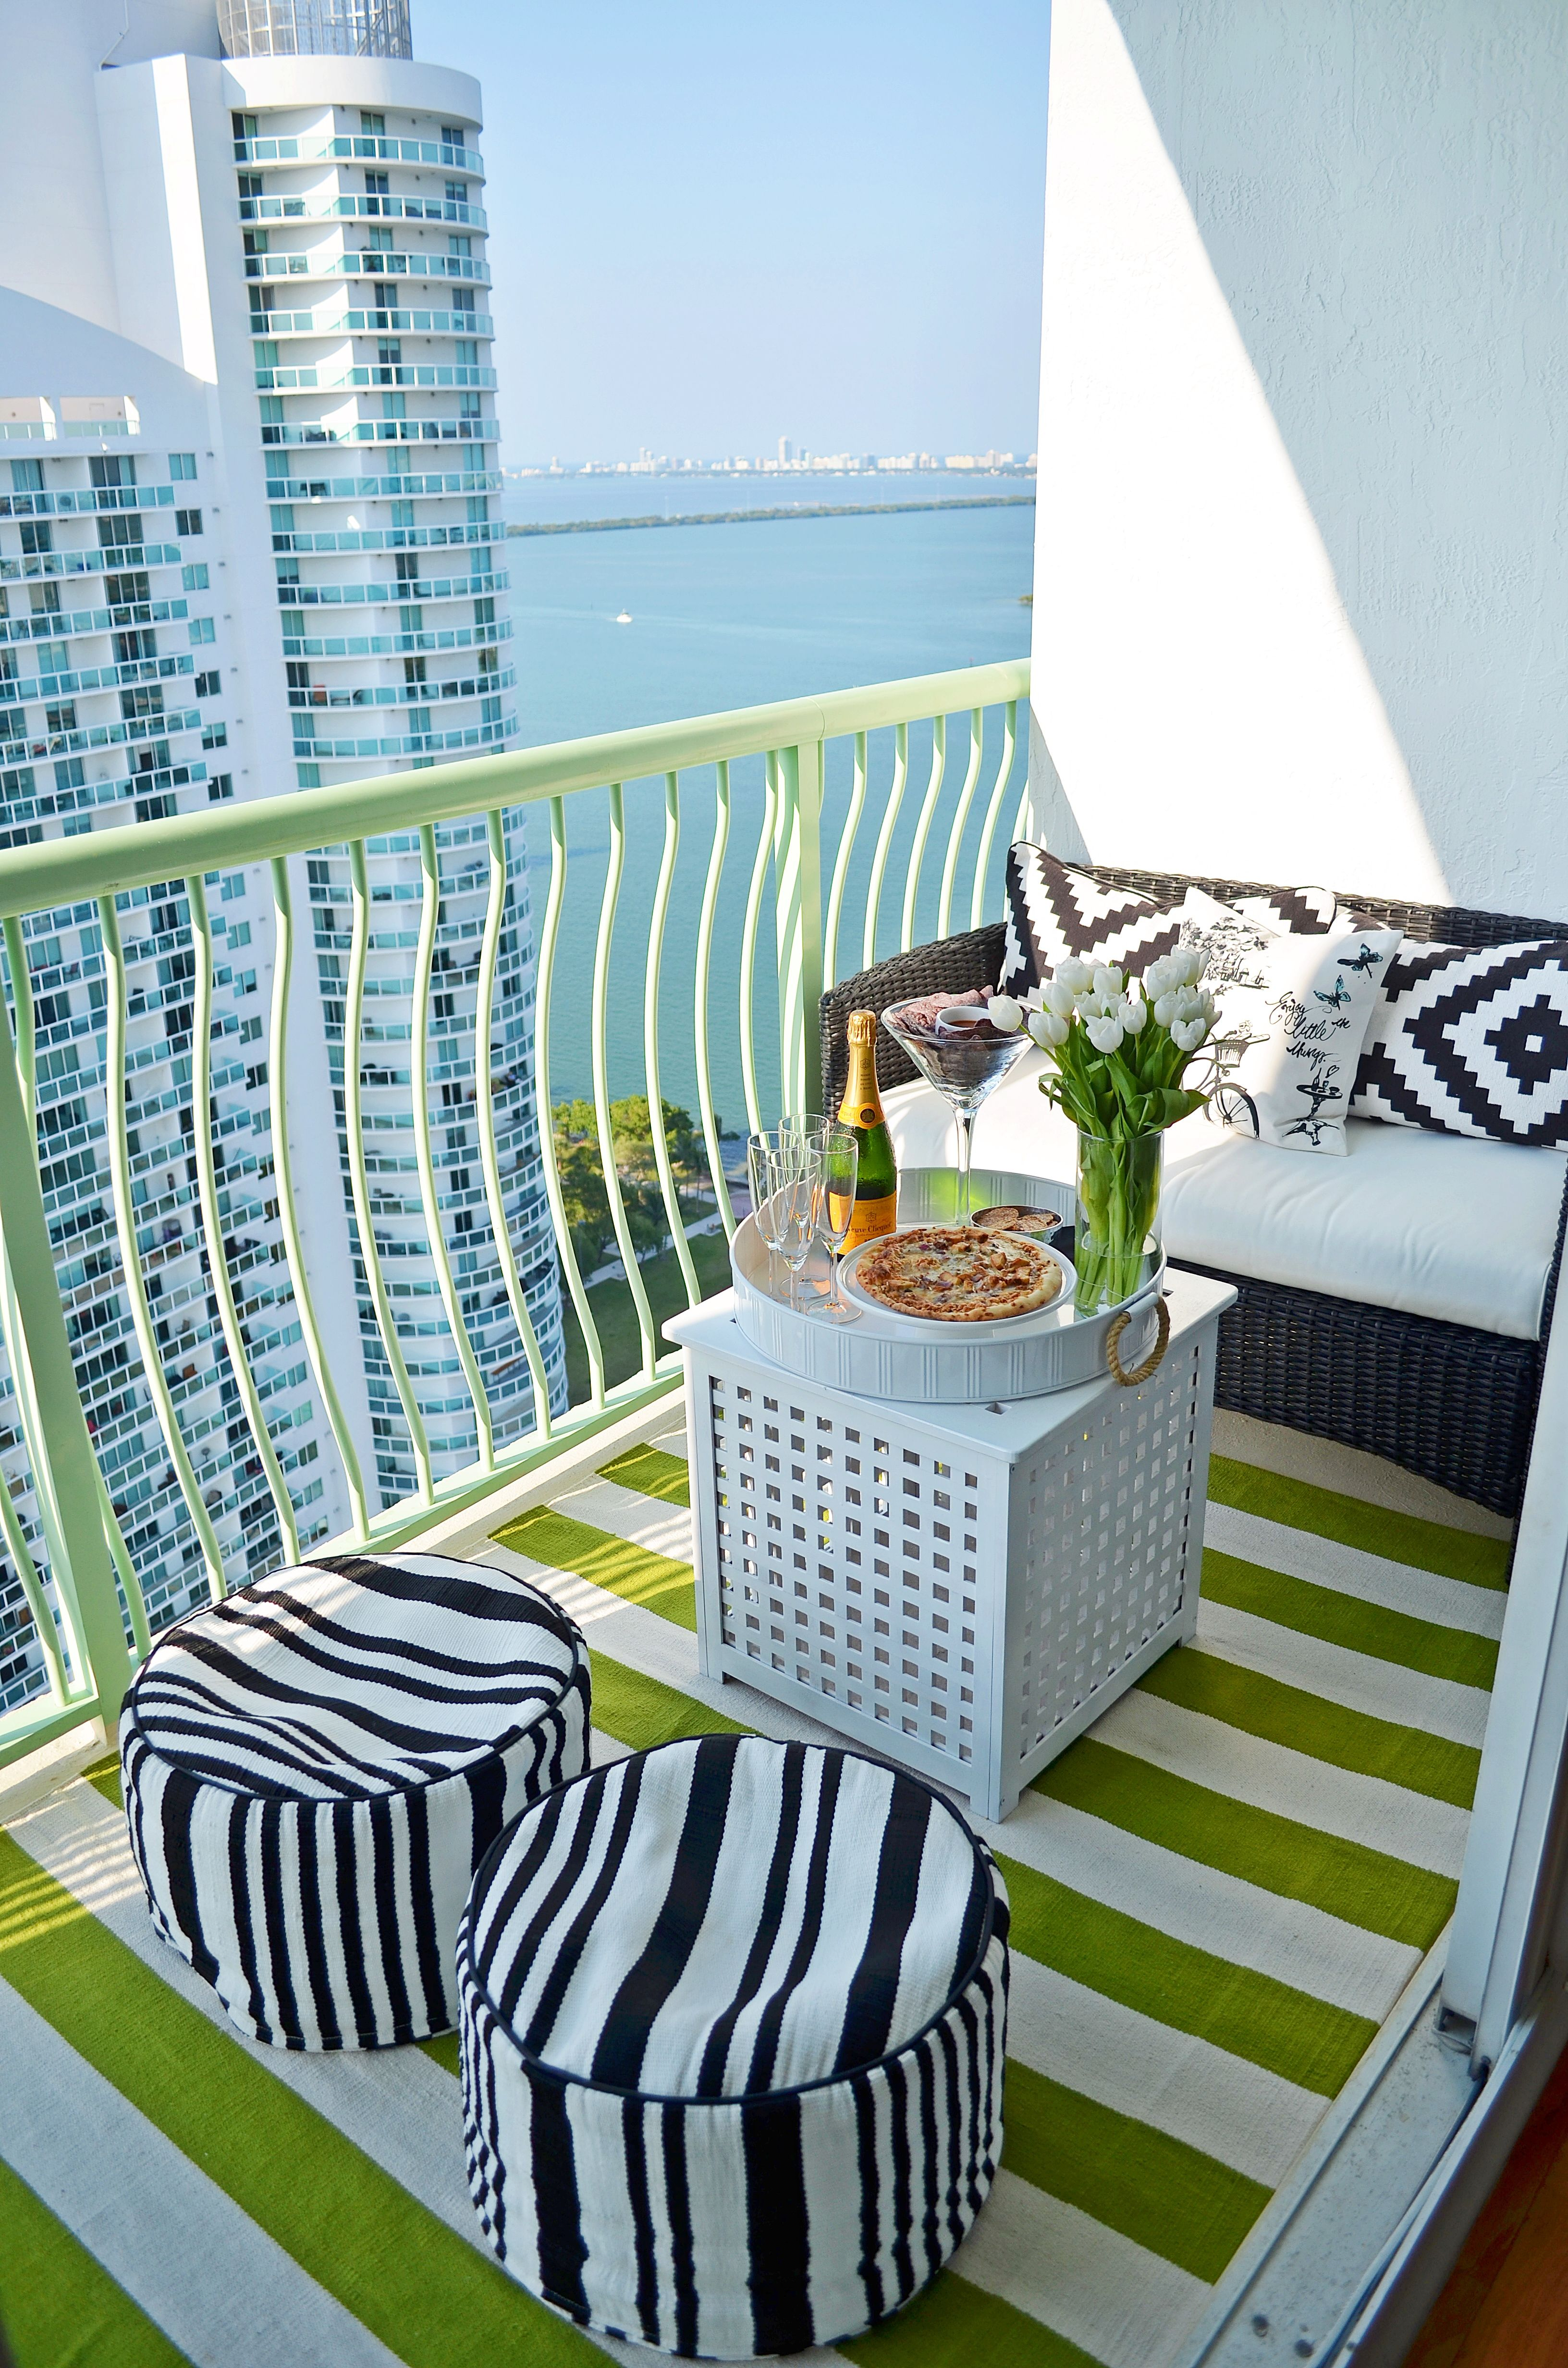 Apartment patio decorations - Find This Pin And More On Front Patio